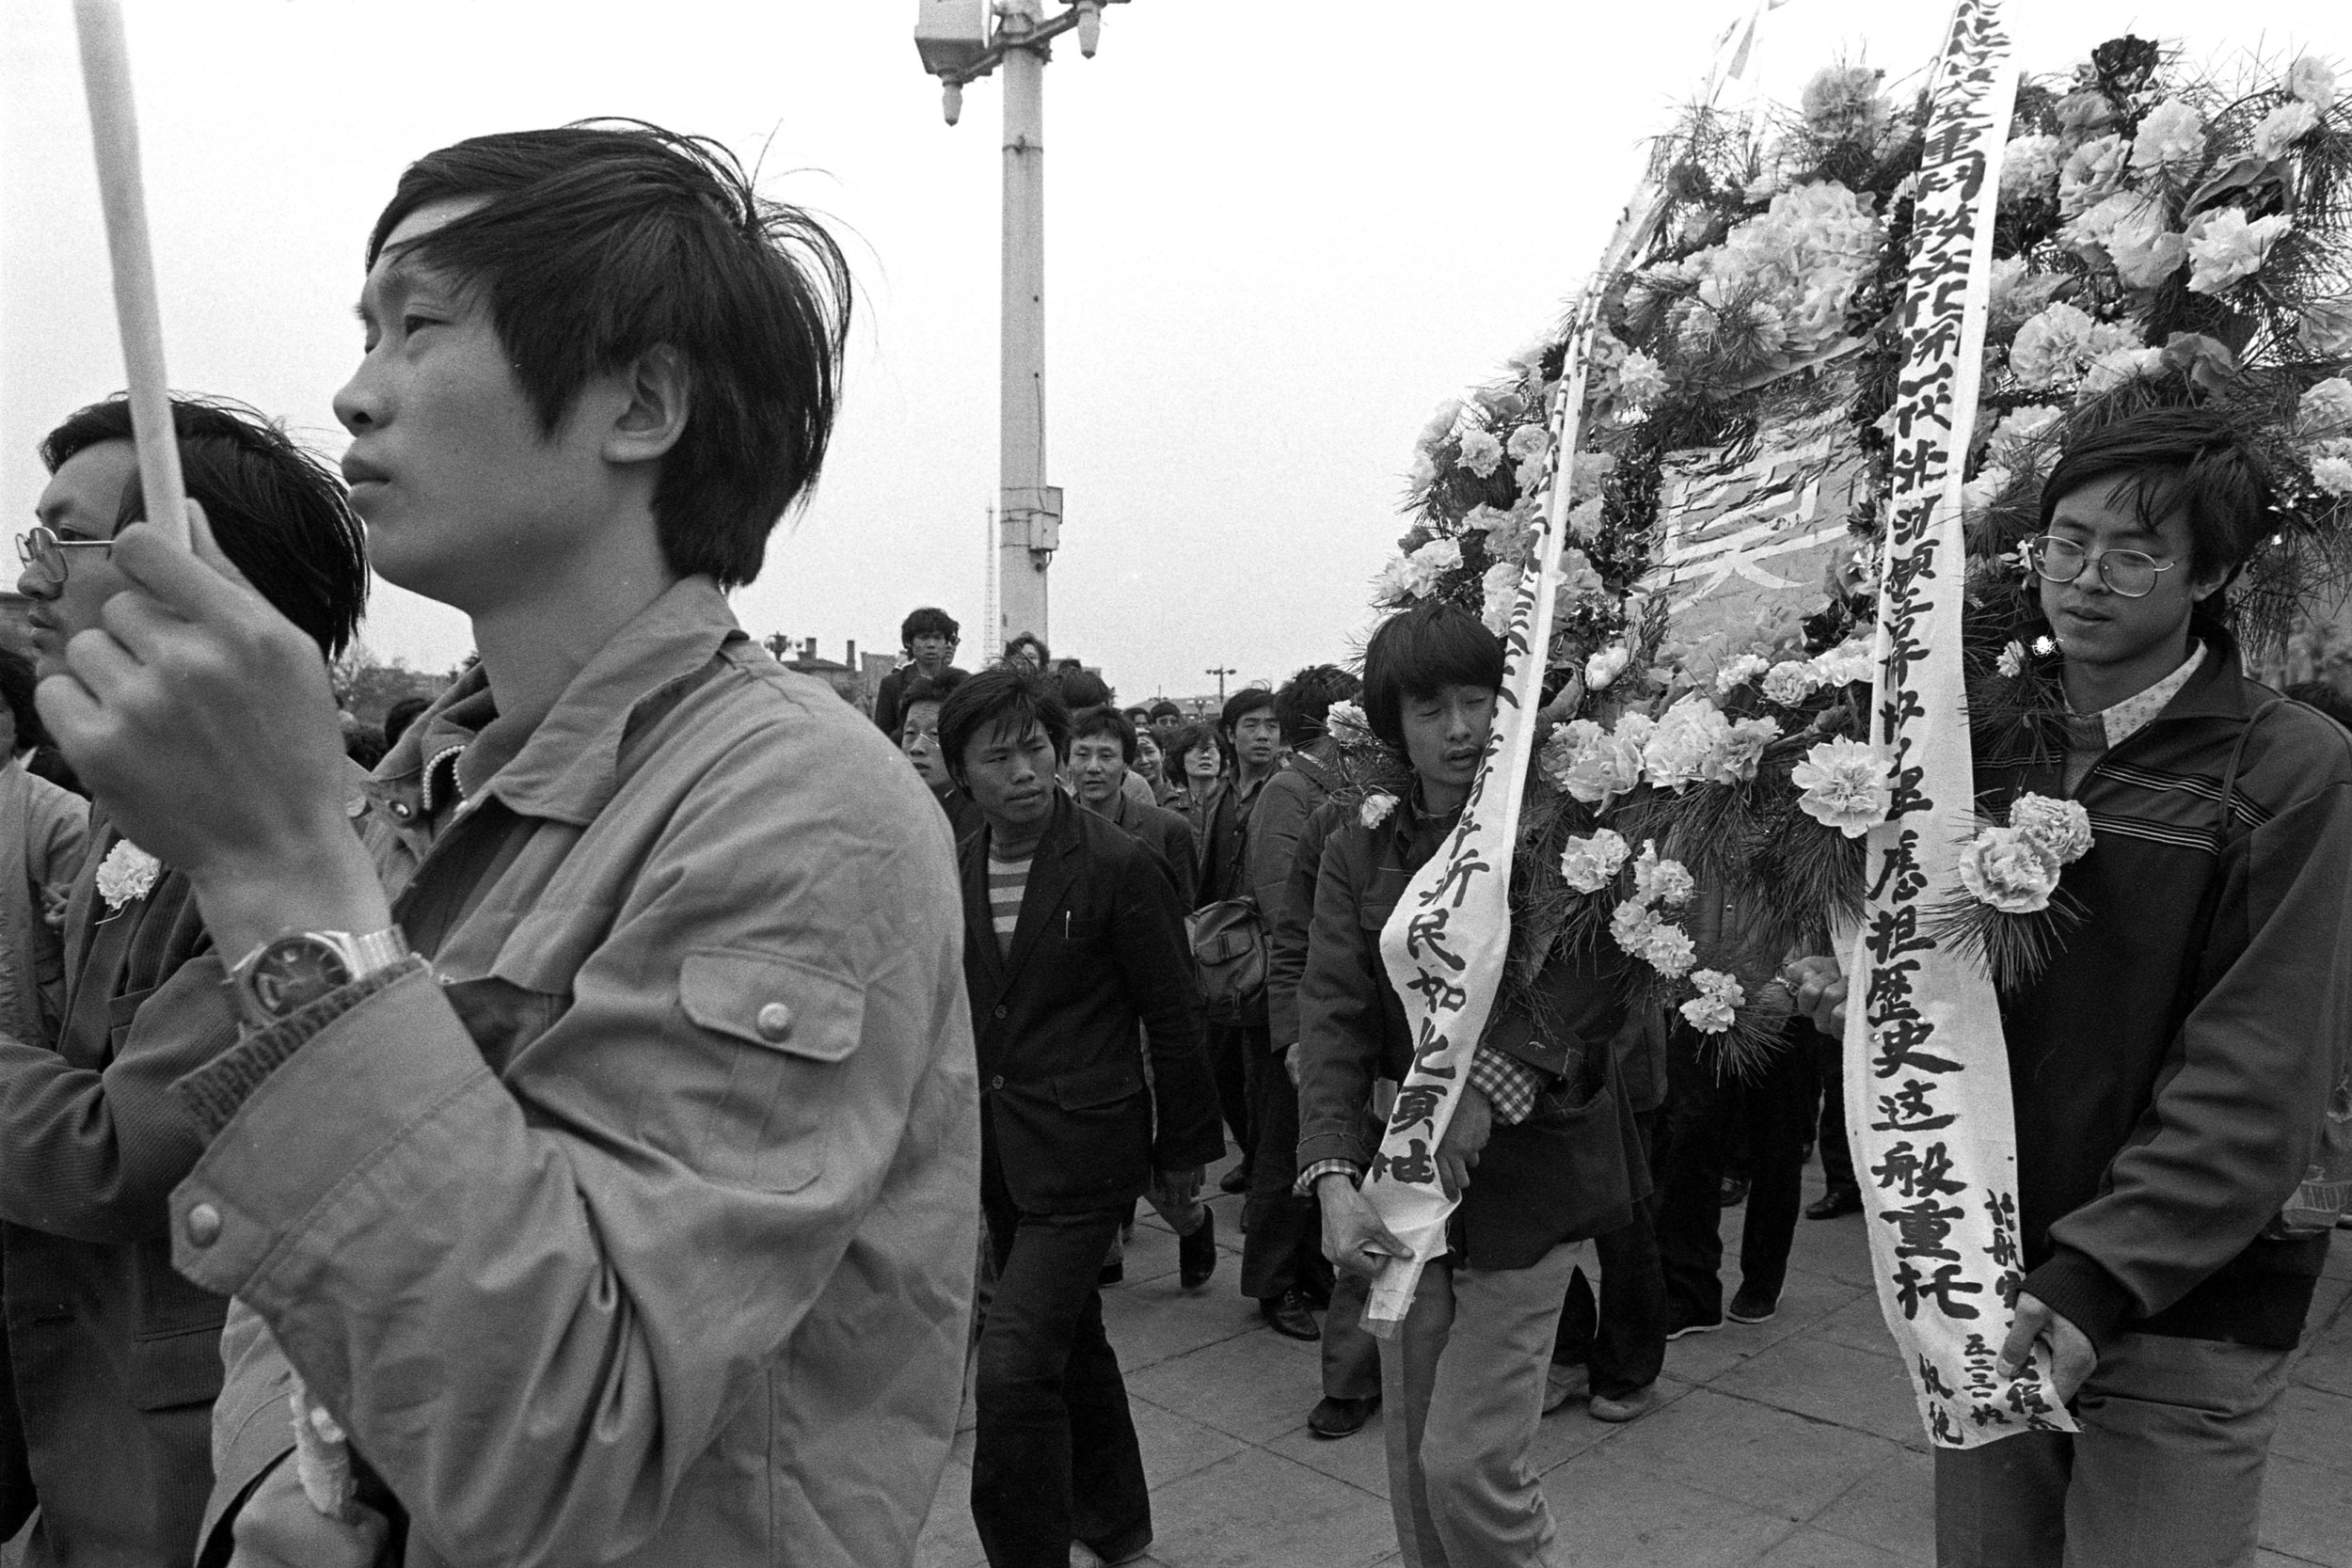 A funeral wreath procession in Tiananmen Square. Photo taken on April 21, 1989. Photo credit: Hsieh San-tai, Howling 1989.